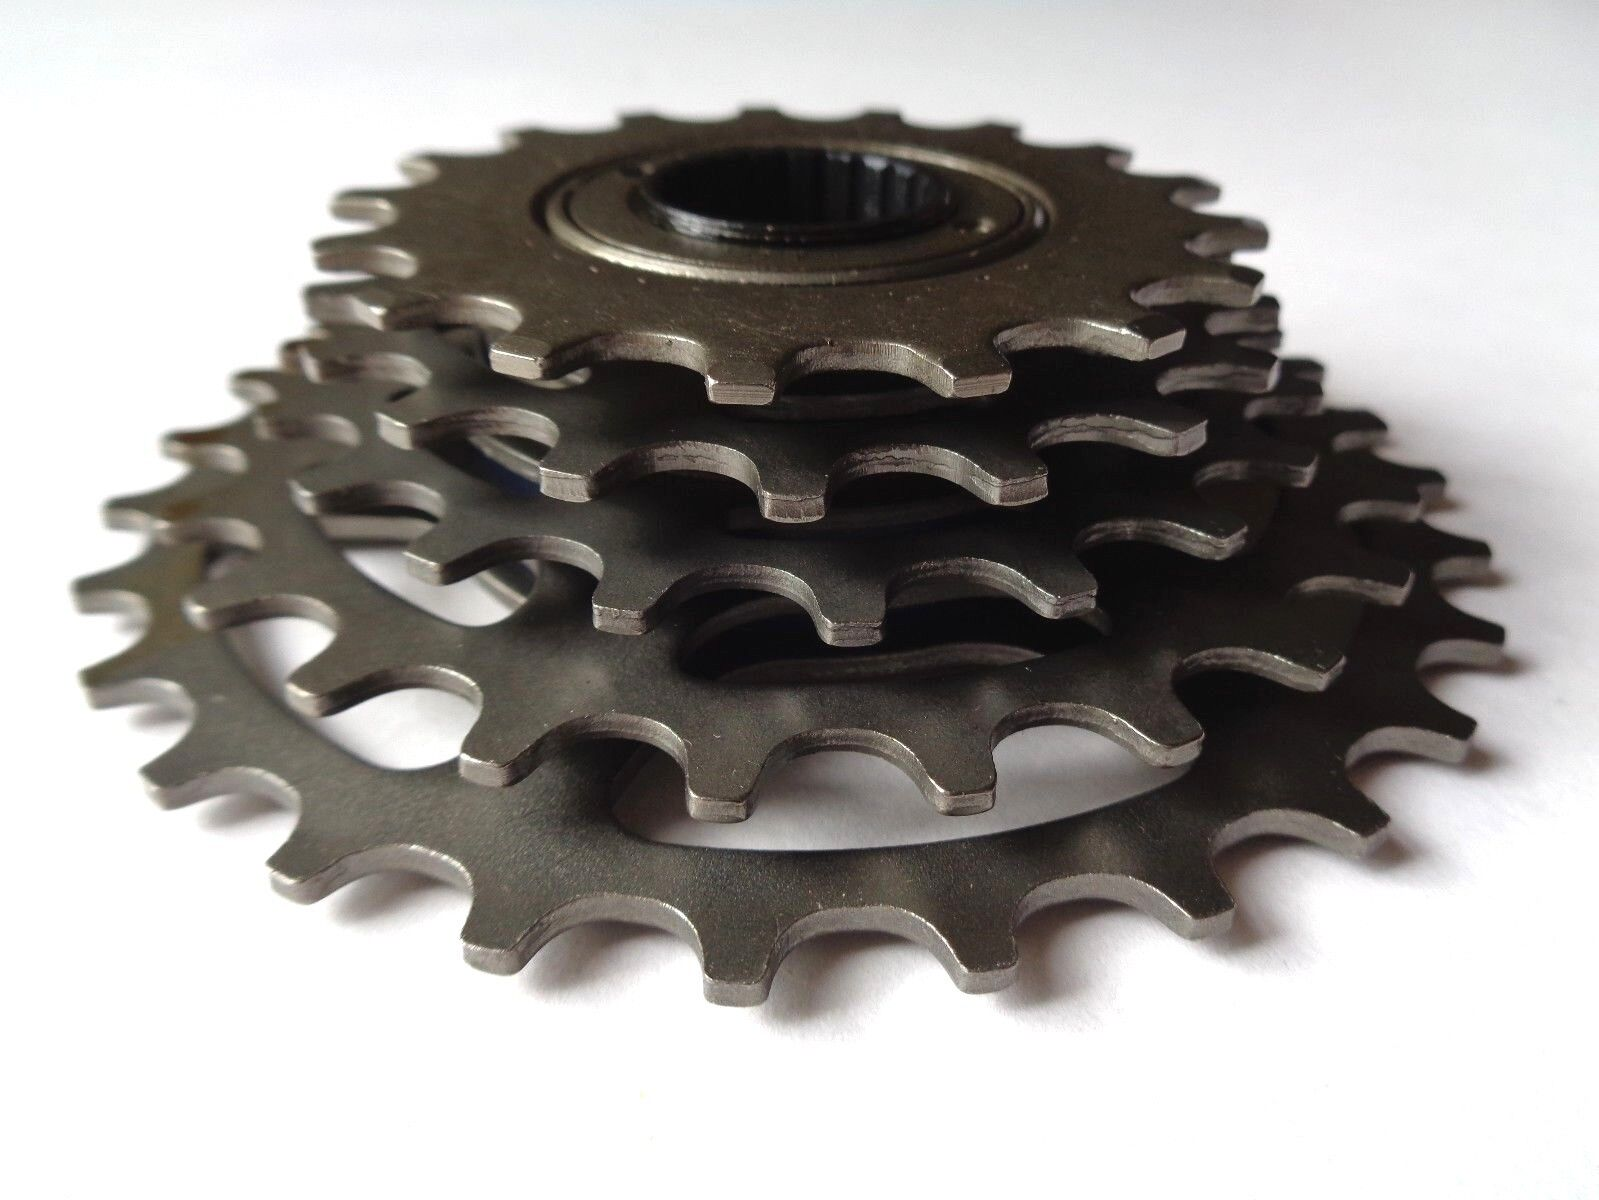 NOS Vintage 1980s REGINA EXTRA BX 17-28 cogs 5 Speed FRENCH freewheel cassette